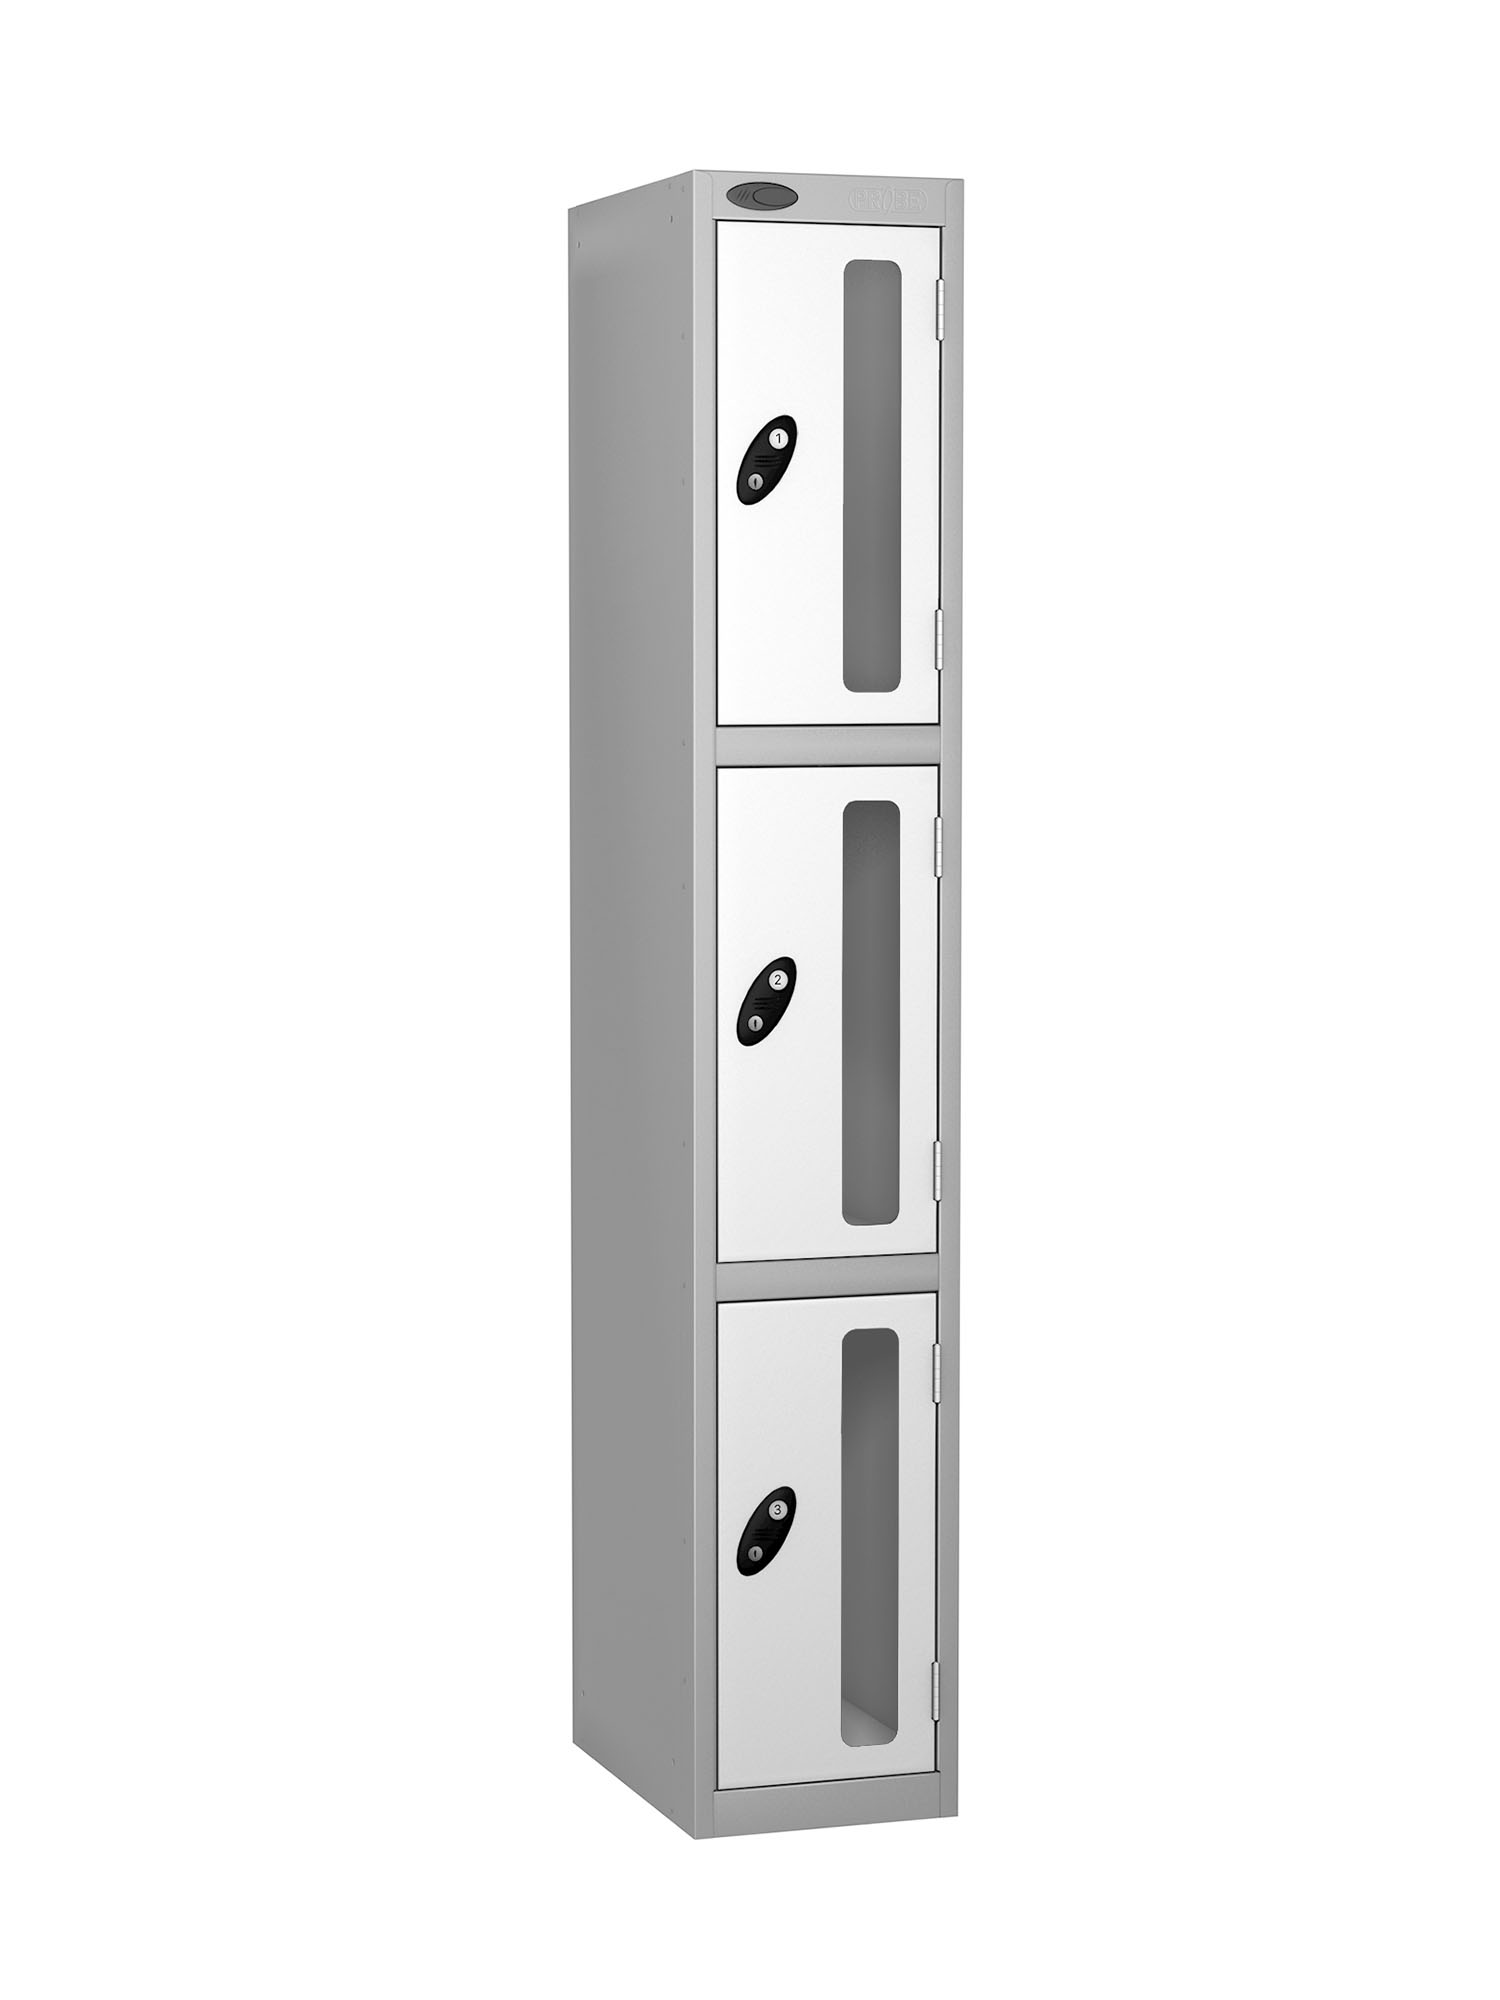 Probe 3 doors vision panel anti-stock theft locker white